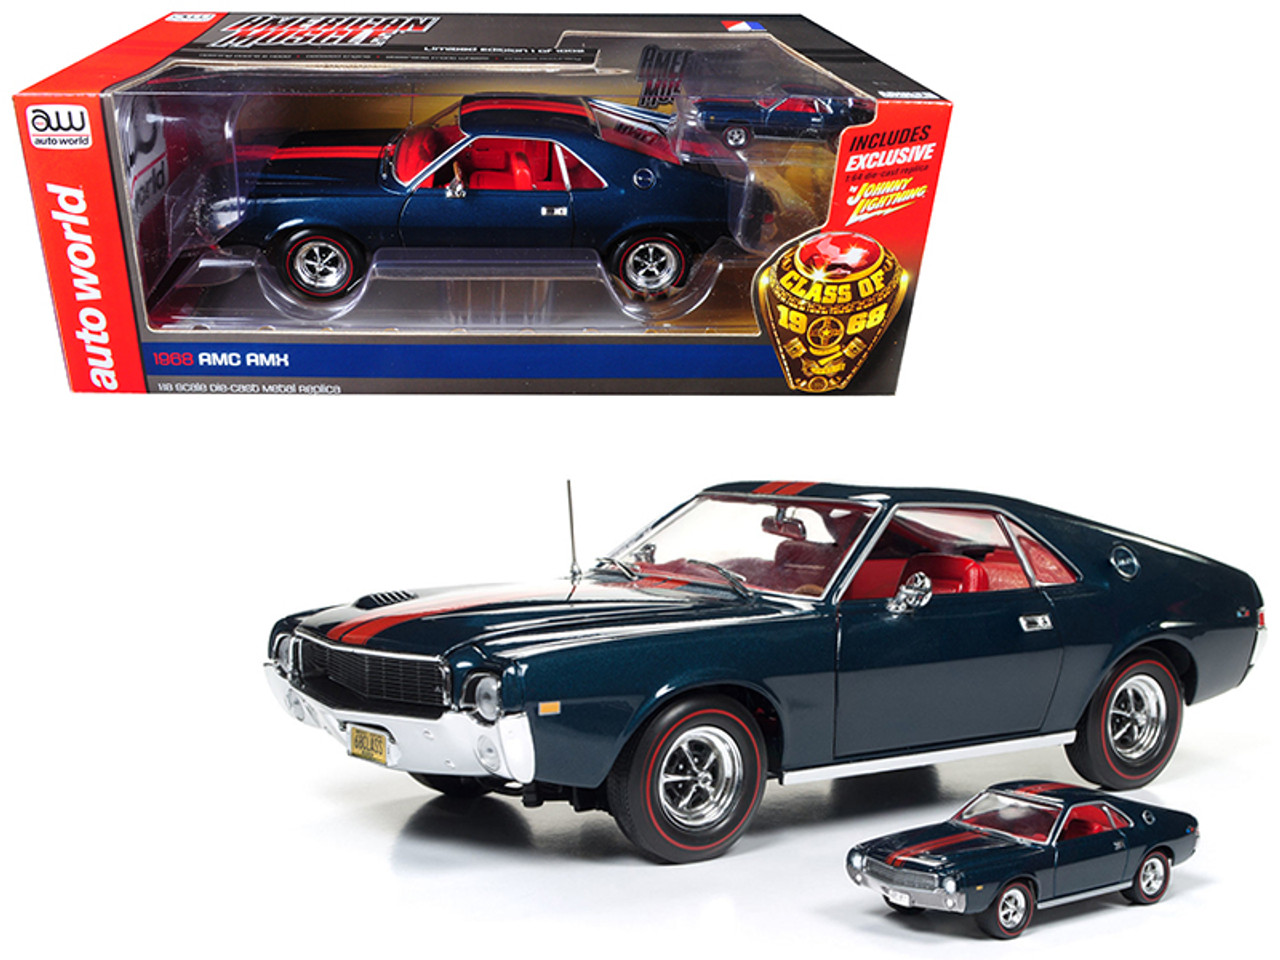 "Autoworld 1968 AMC AMX Hardtop Blazer Blue ""Class of 68"" 50th Anniversary 1/18 and 1/64 2 Cars Set Limited Edition to 1002 pieces Worldwide Diecast Model Cars"